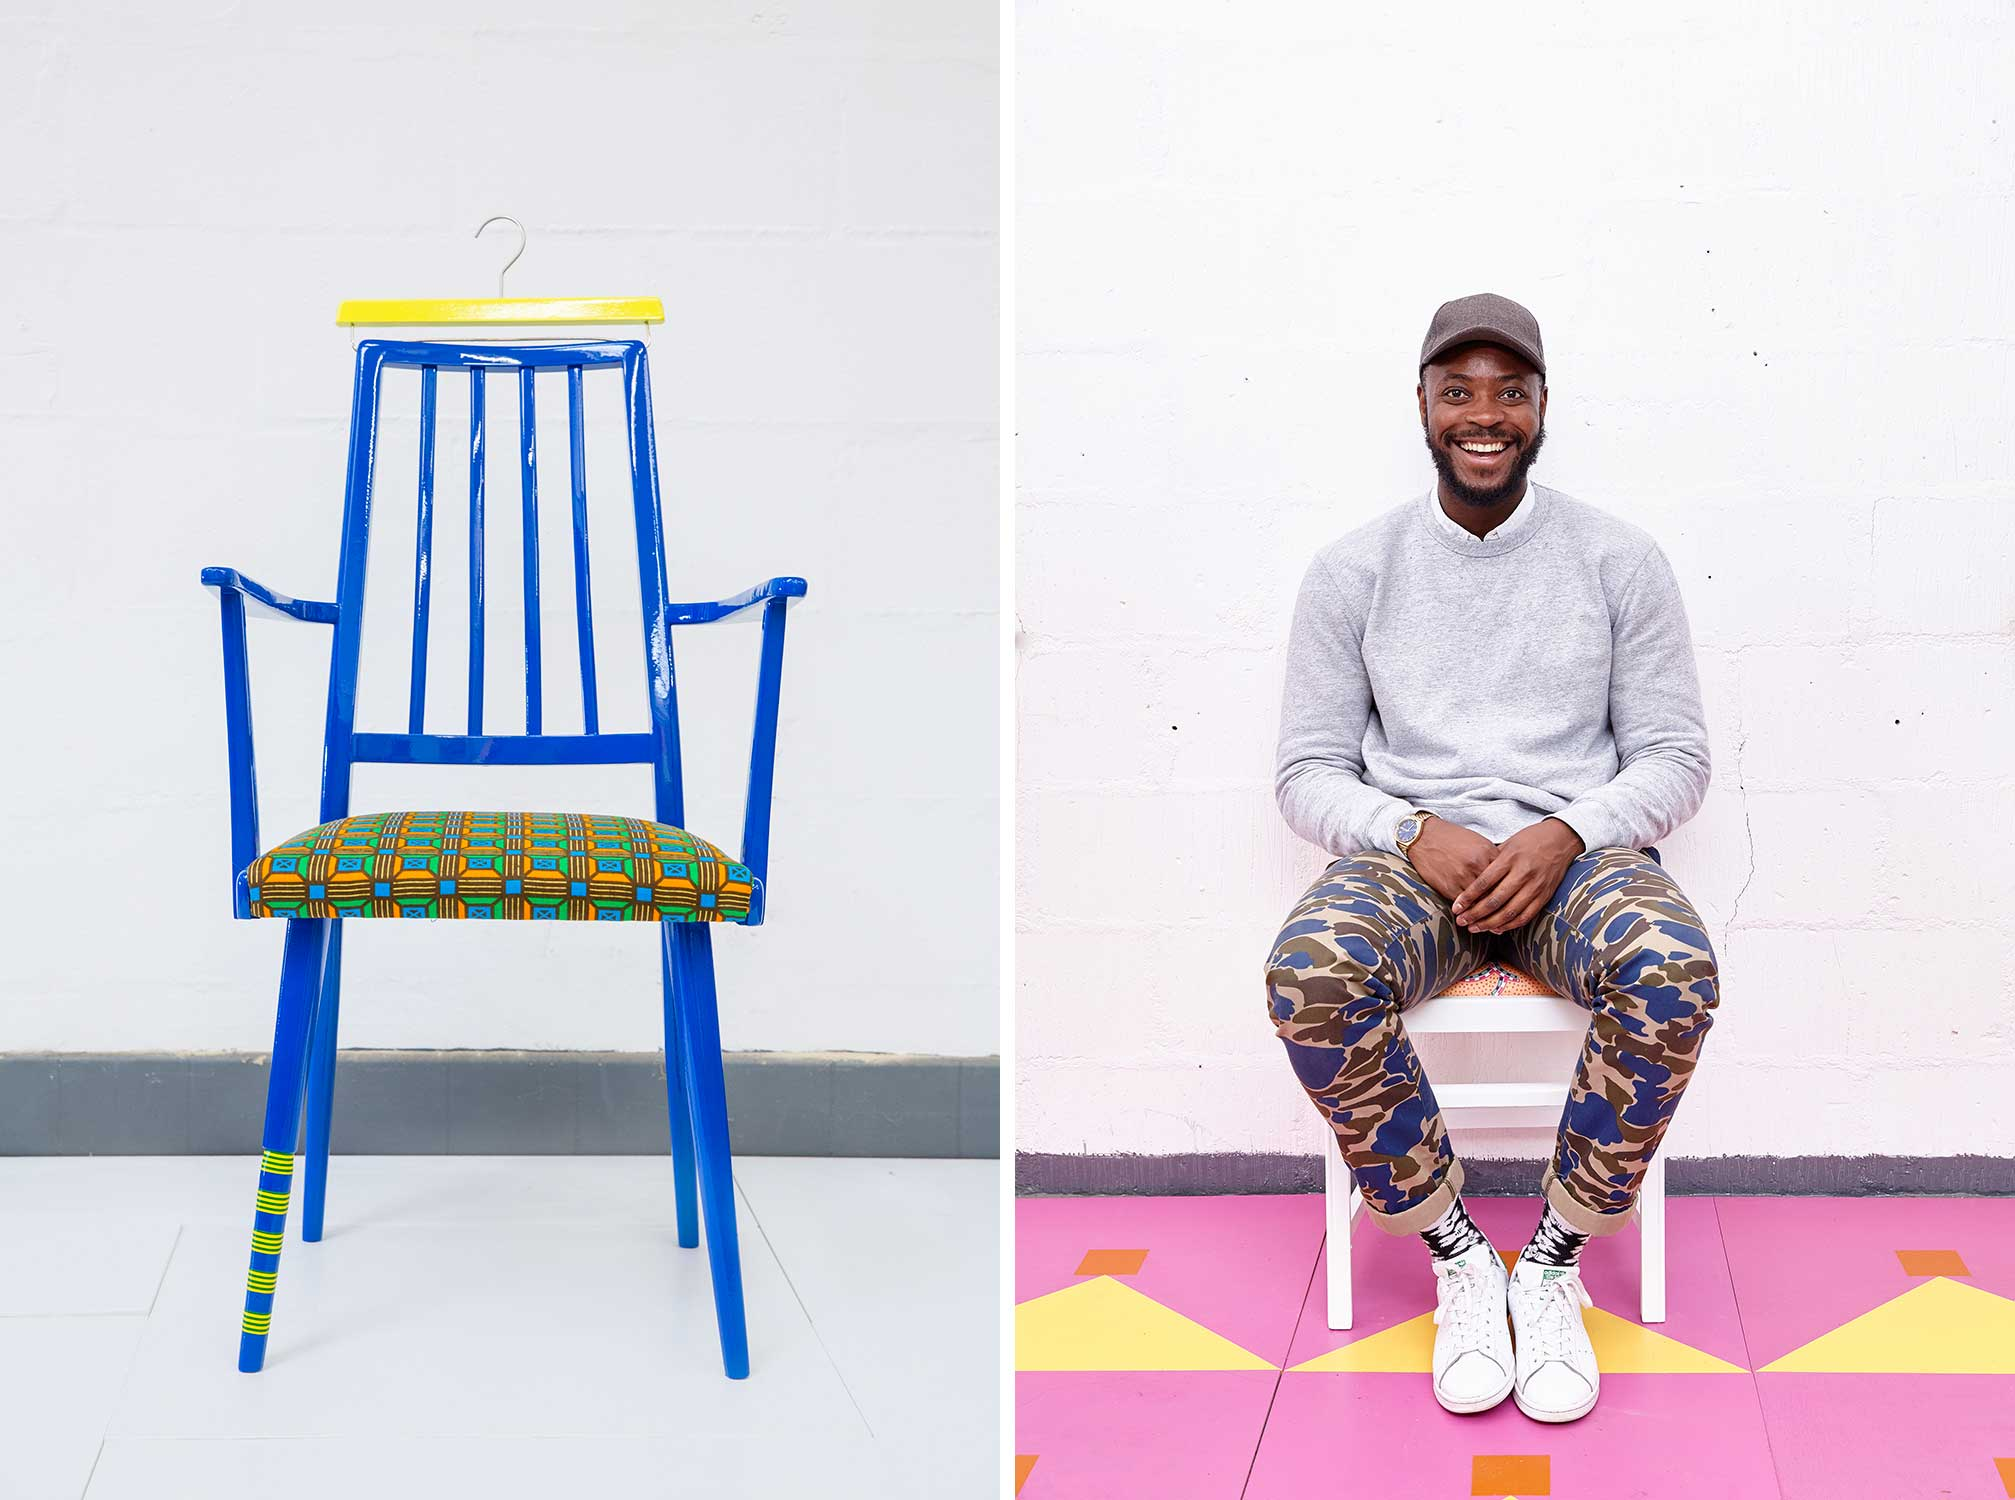 On the left, a bright blue chair against a white wall. On the right, Yinka Ilori sitting in a chair.